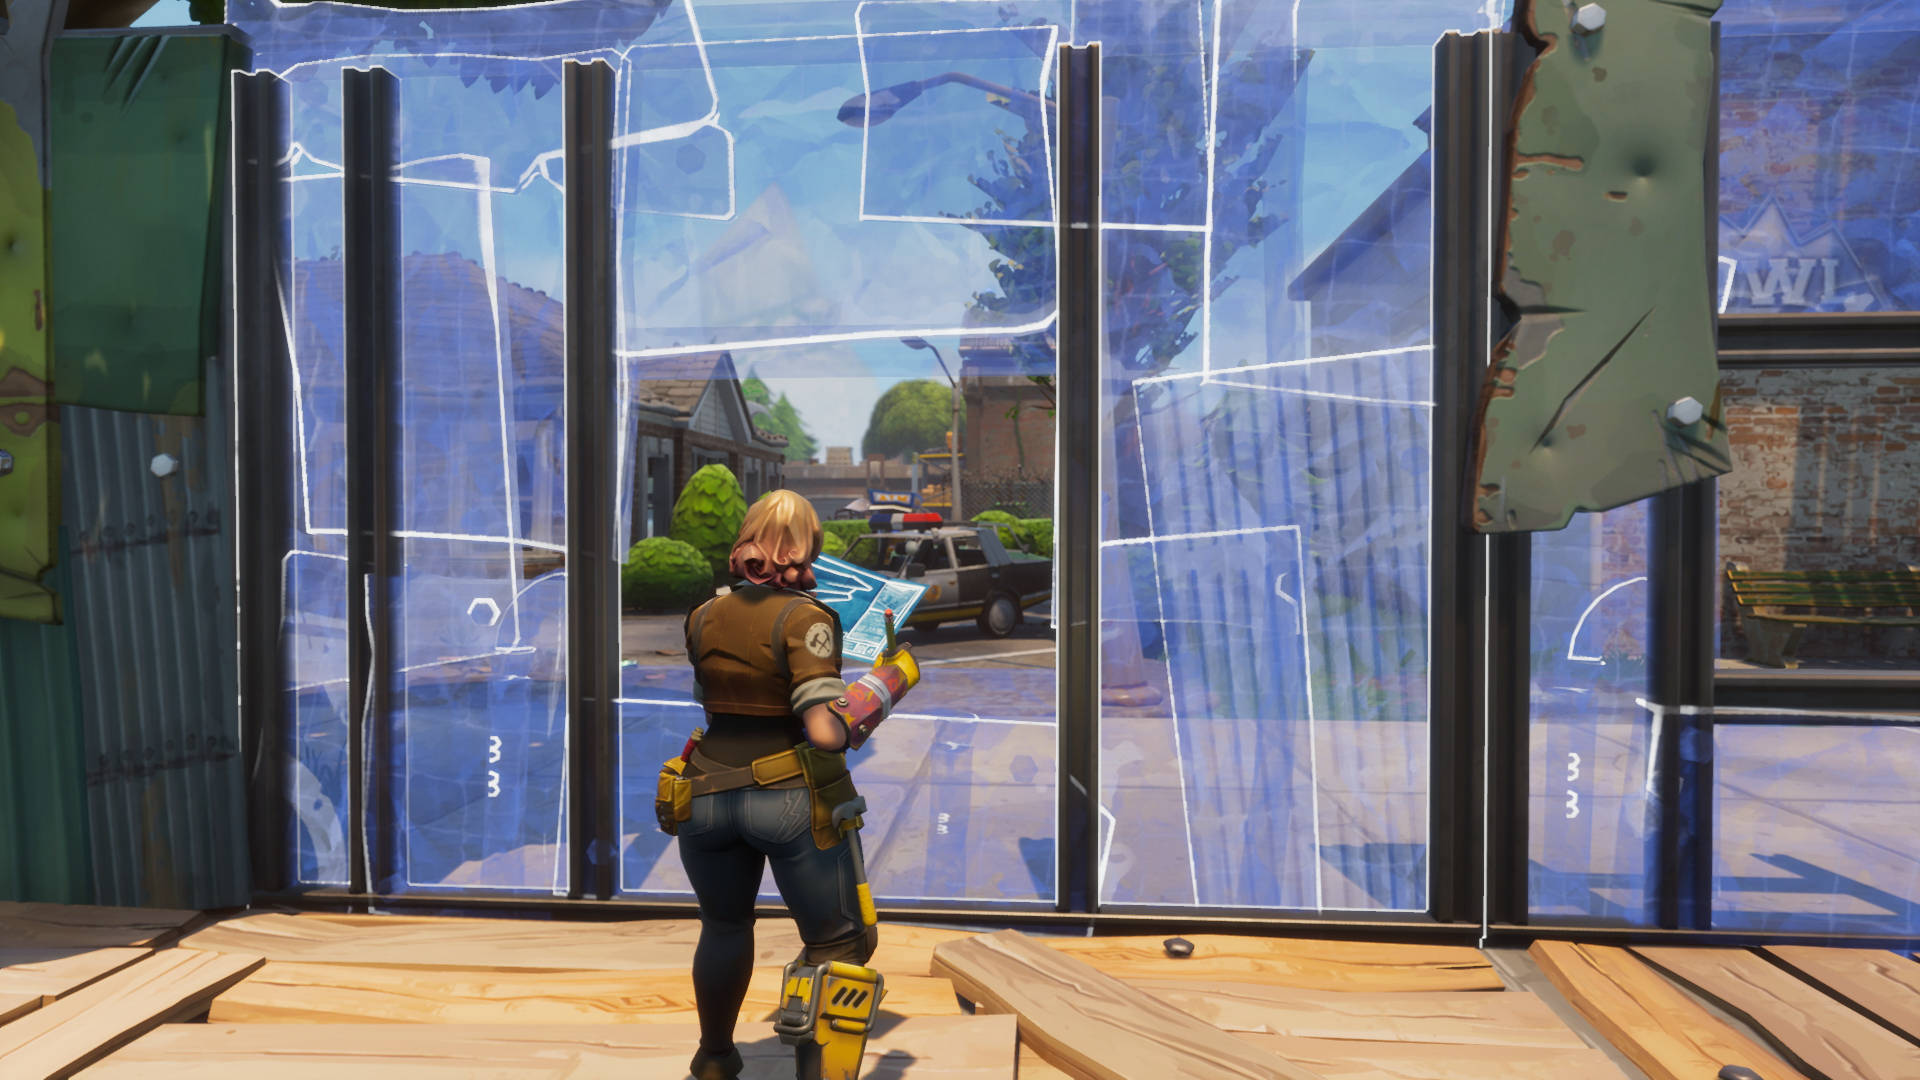 Fortnite-Android-guide-How-to-download-install-and-play-on-mobile